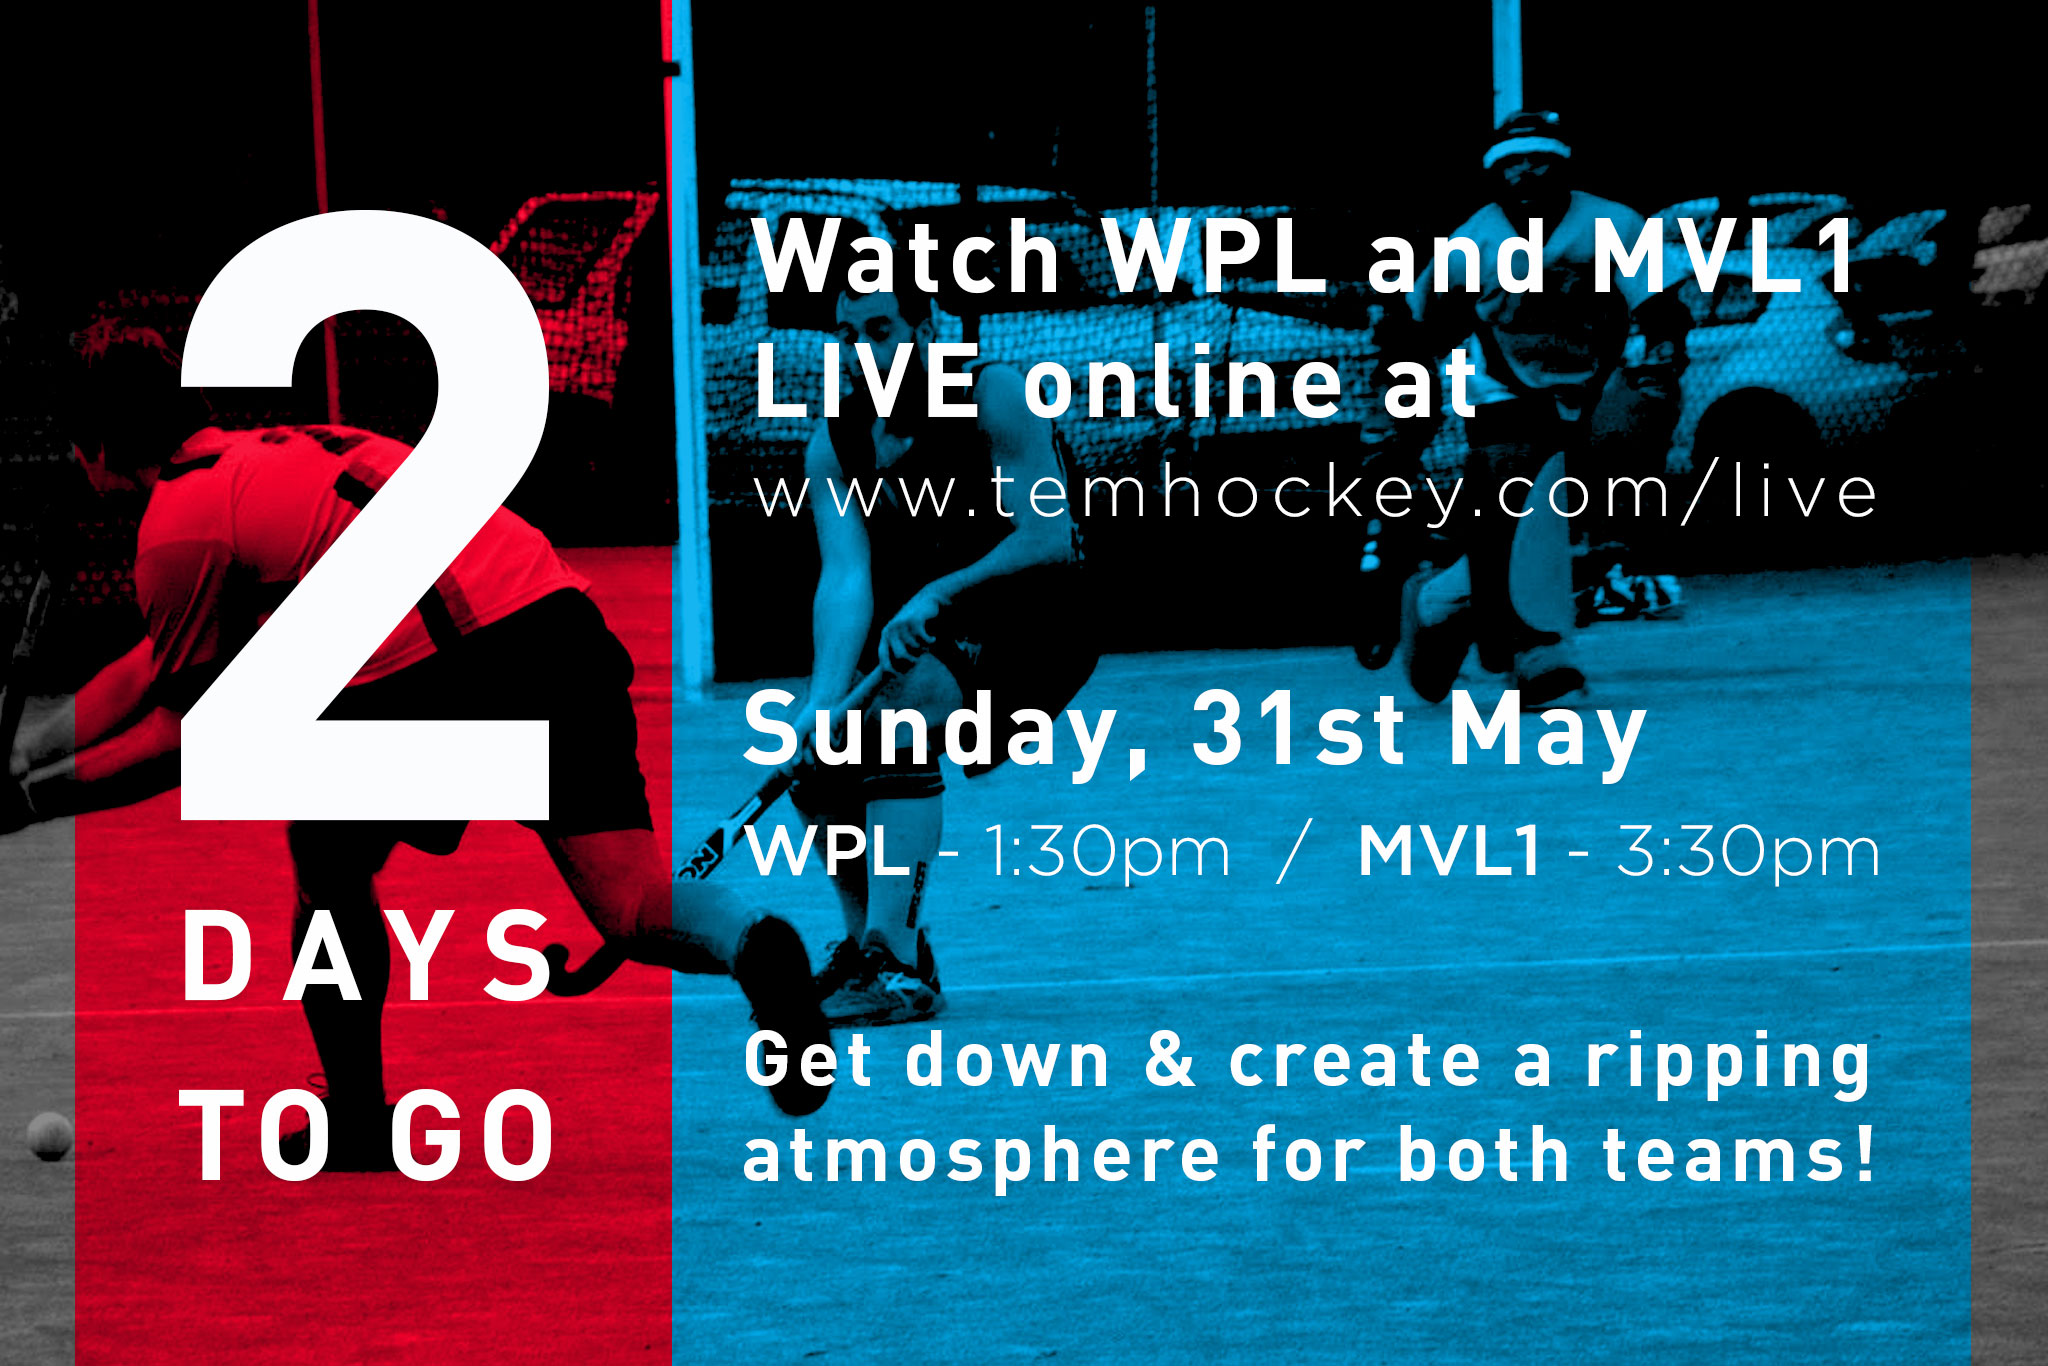 Only 2 days left until our first ever live stream down at H1